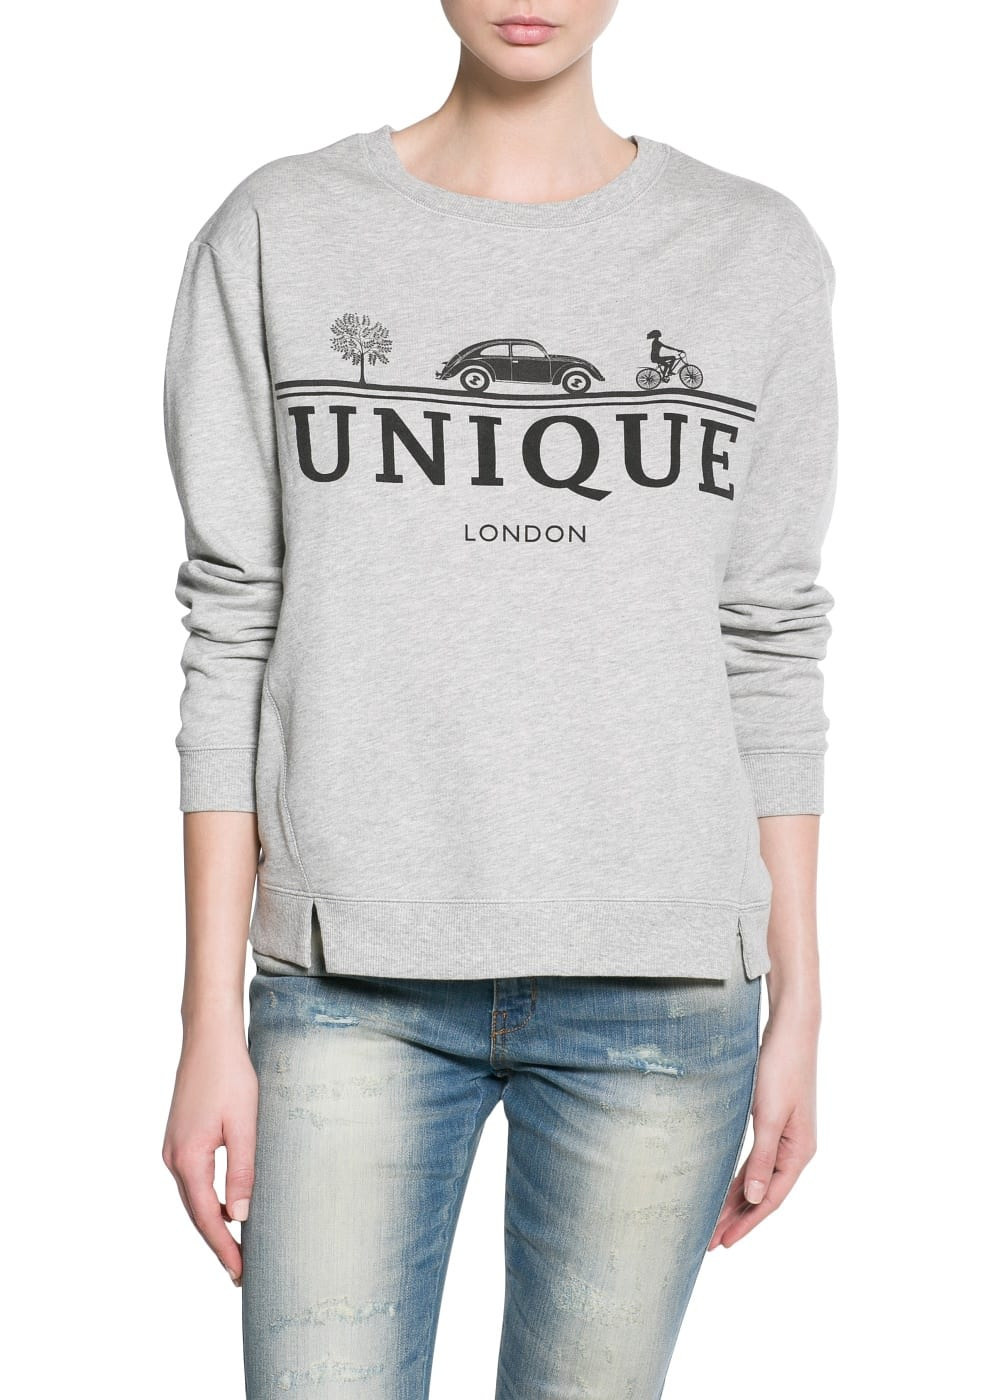 Unique London sweatshirt